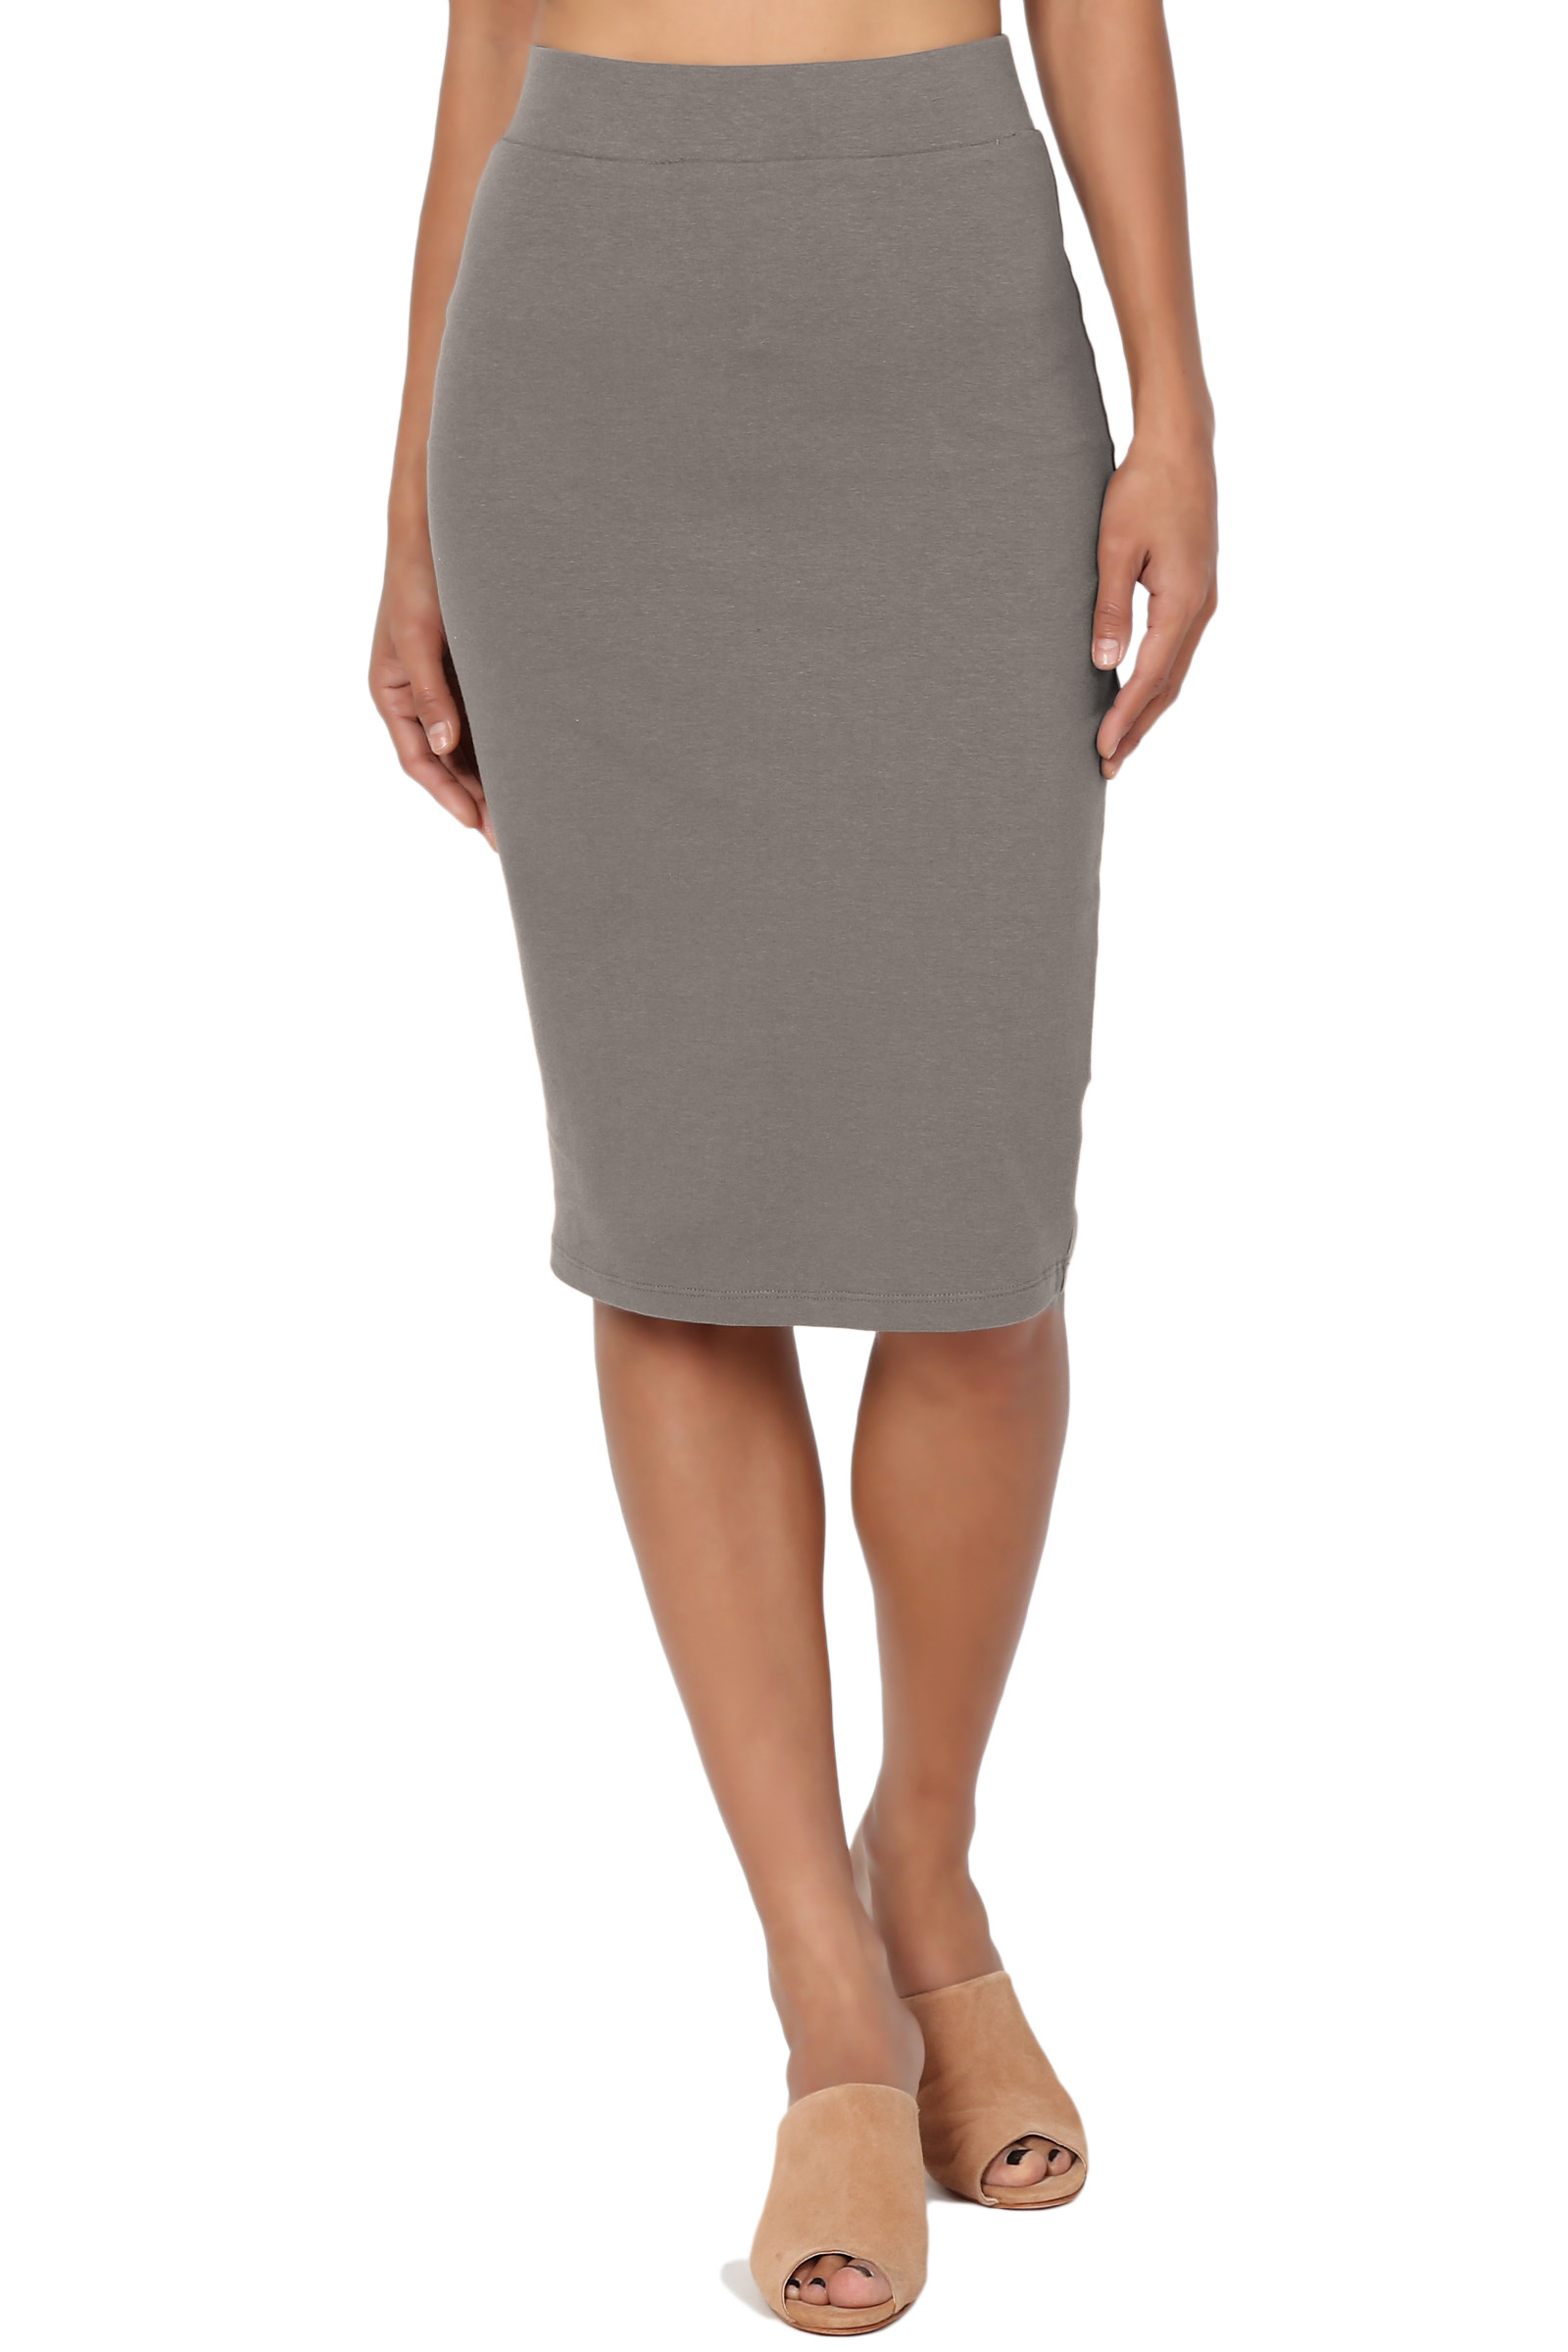 TheMogan Women's S~3X Elastic High Waist Stretch Cotton Knee Pencil Midi Skirt